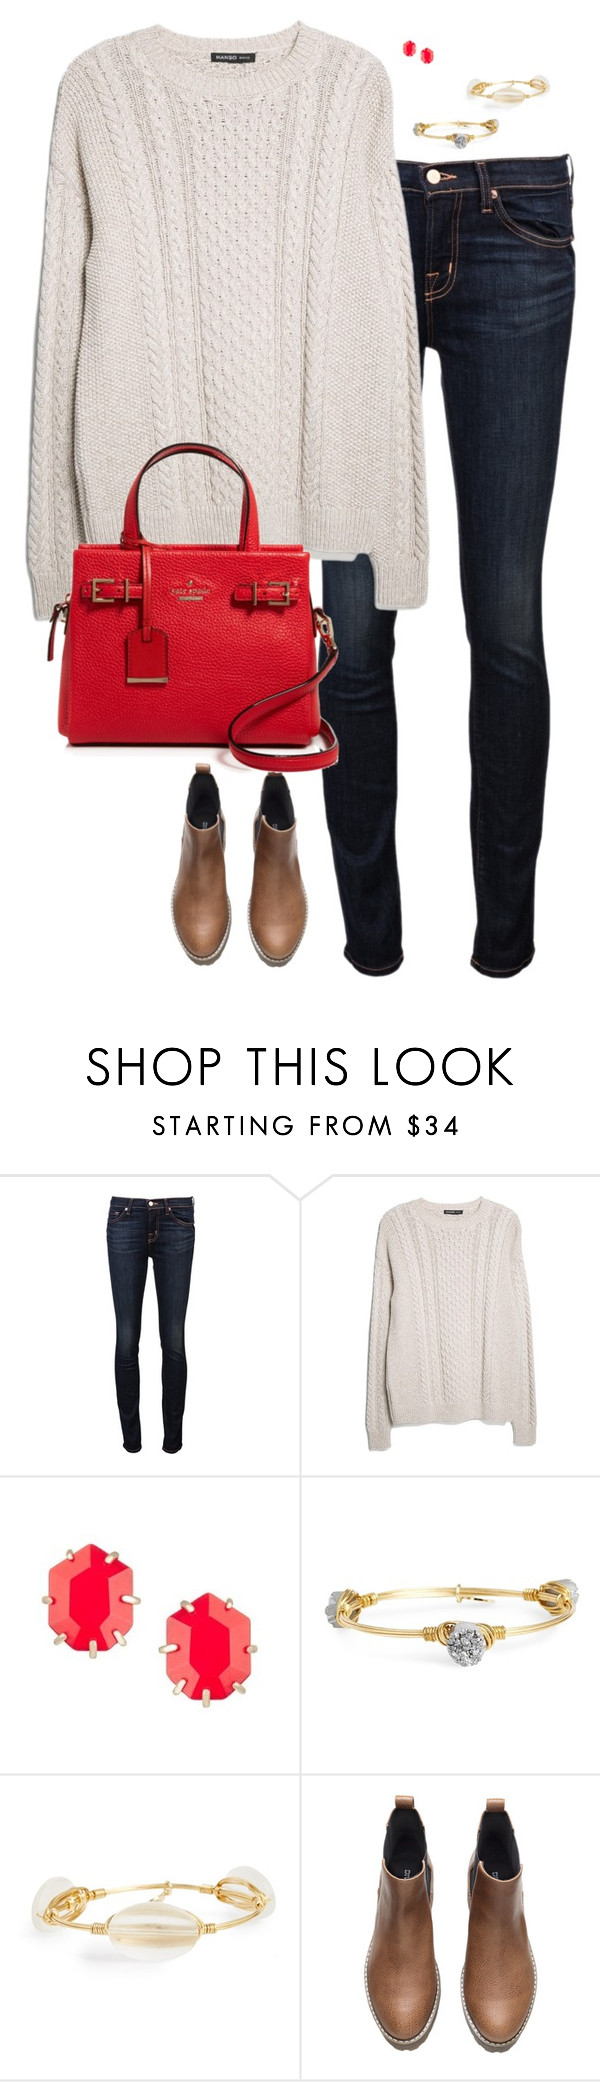 """""""Thankful Spirits..."""" by sc-prep-girl ❤ liked on Polyvore featuring J Brand, MANGO, Kendra Scott, Bourbon and Boweties, H&M and Kate Spade"""